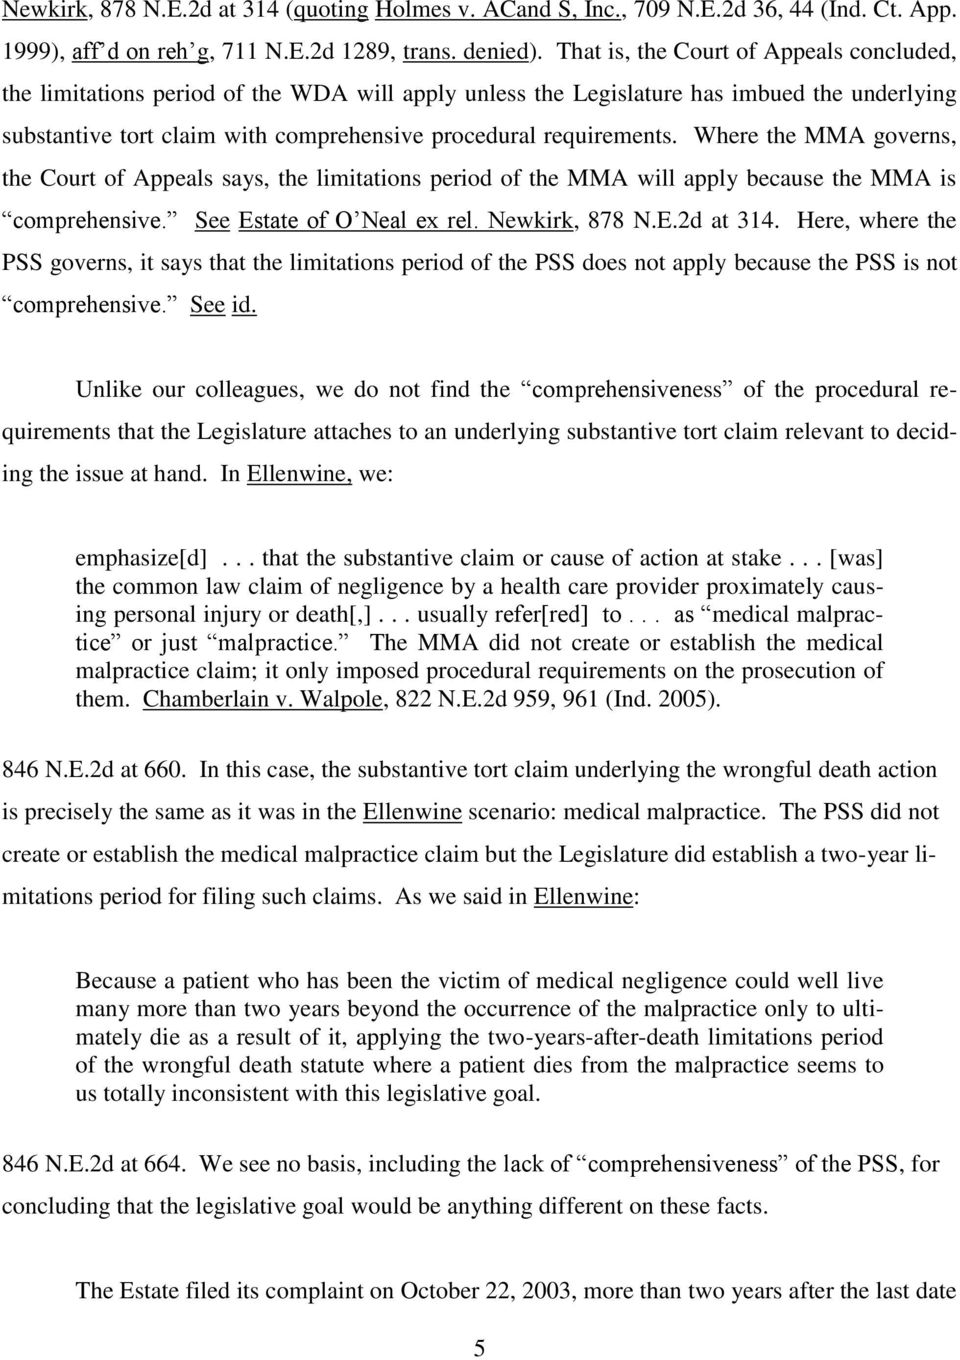 requirements. Where the MMA governs, the Court of Appeals says, the limitations period of the MMA will apply because the MMA is comprehensive. See Estate of O Neal ex rel. Newkirk, 878 N.E.2d at 314.